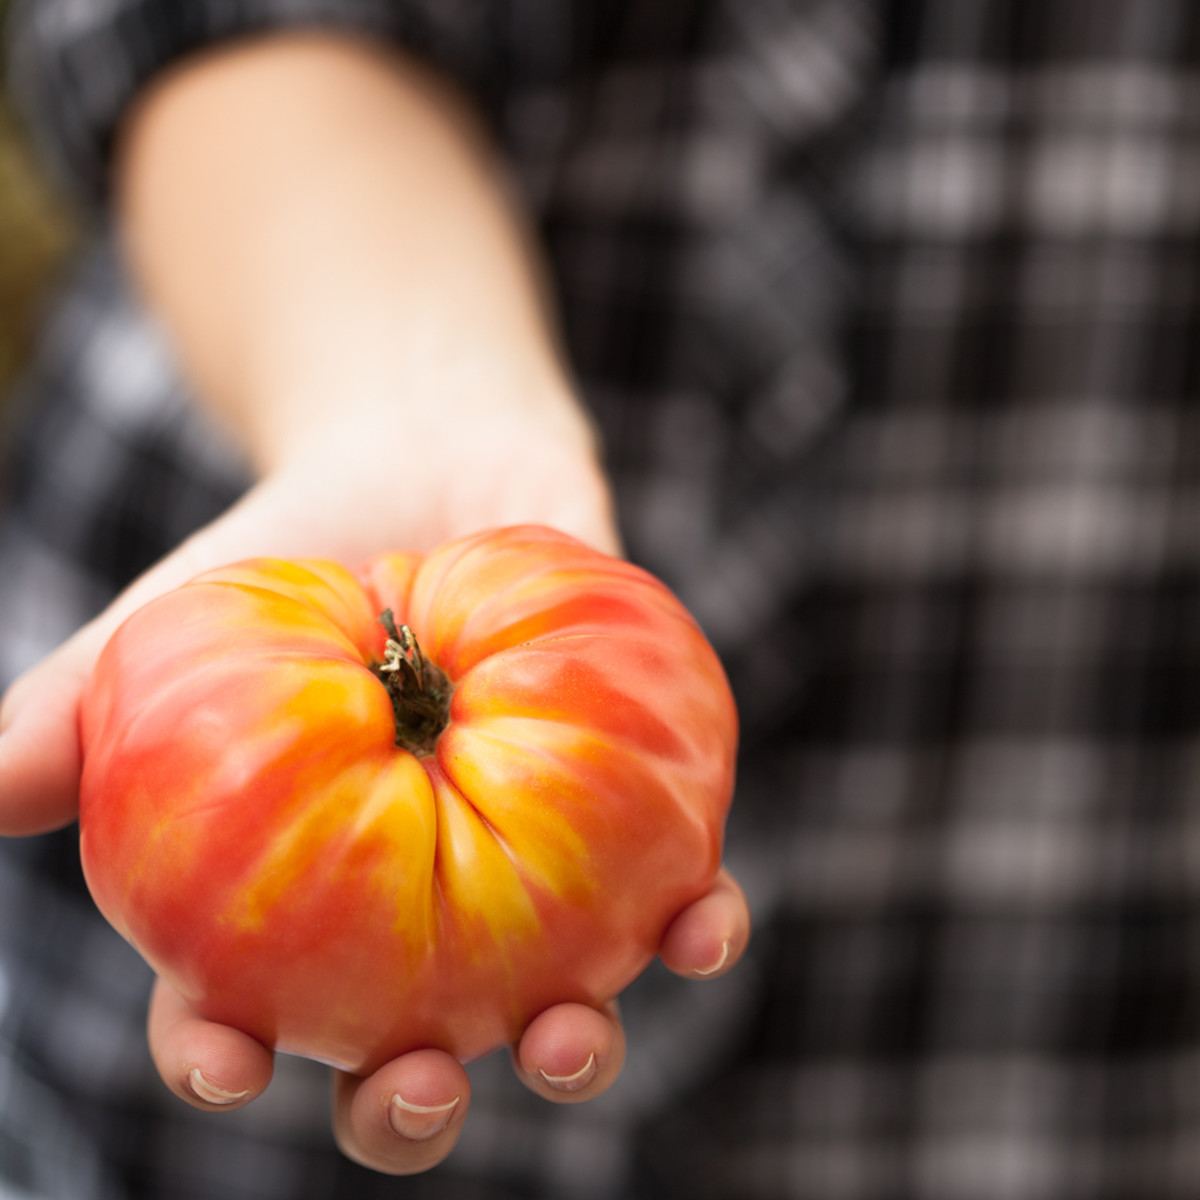 7 Steps to Save Heirloom Tomato Seeds and Start Your Own Seed Bank